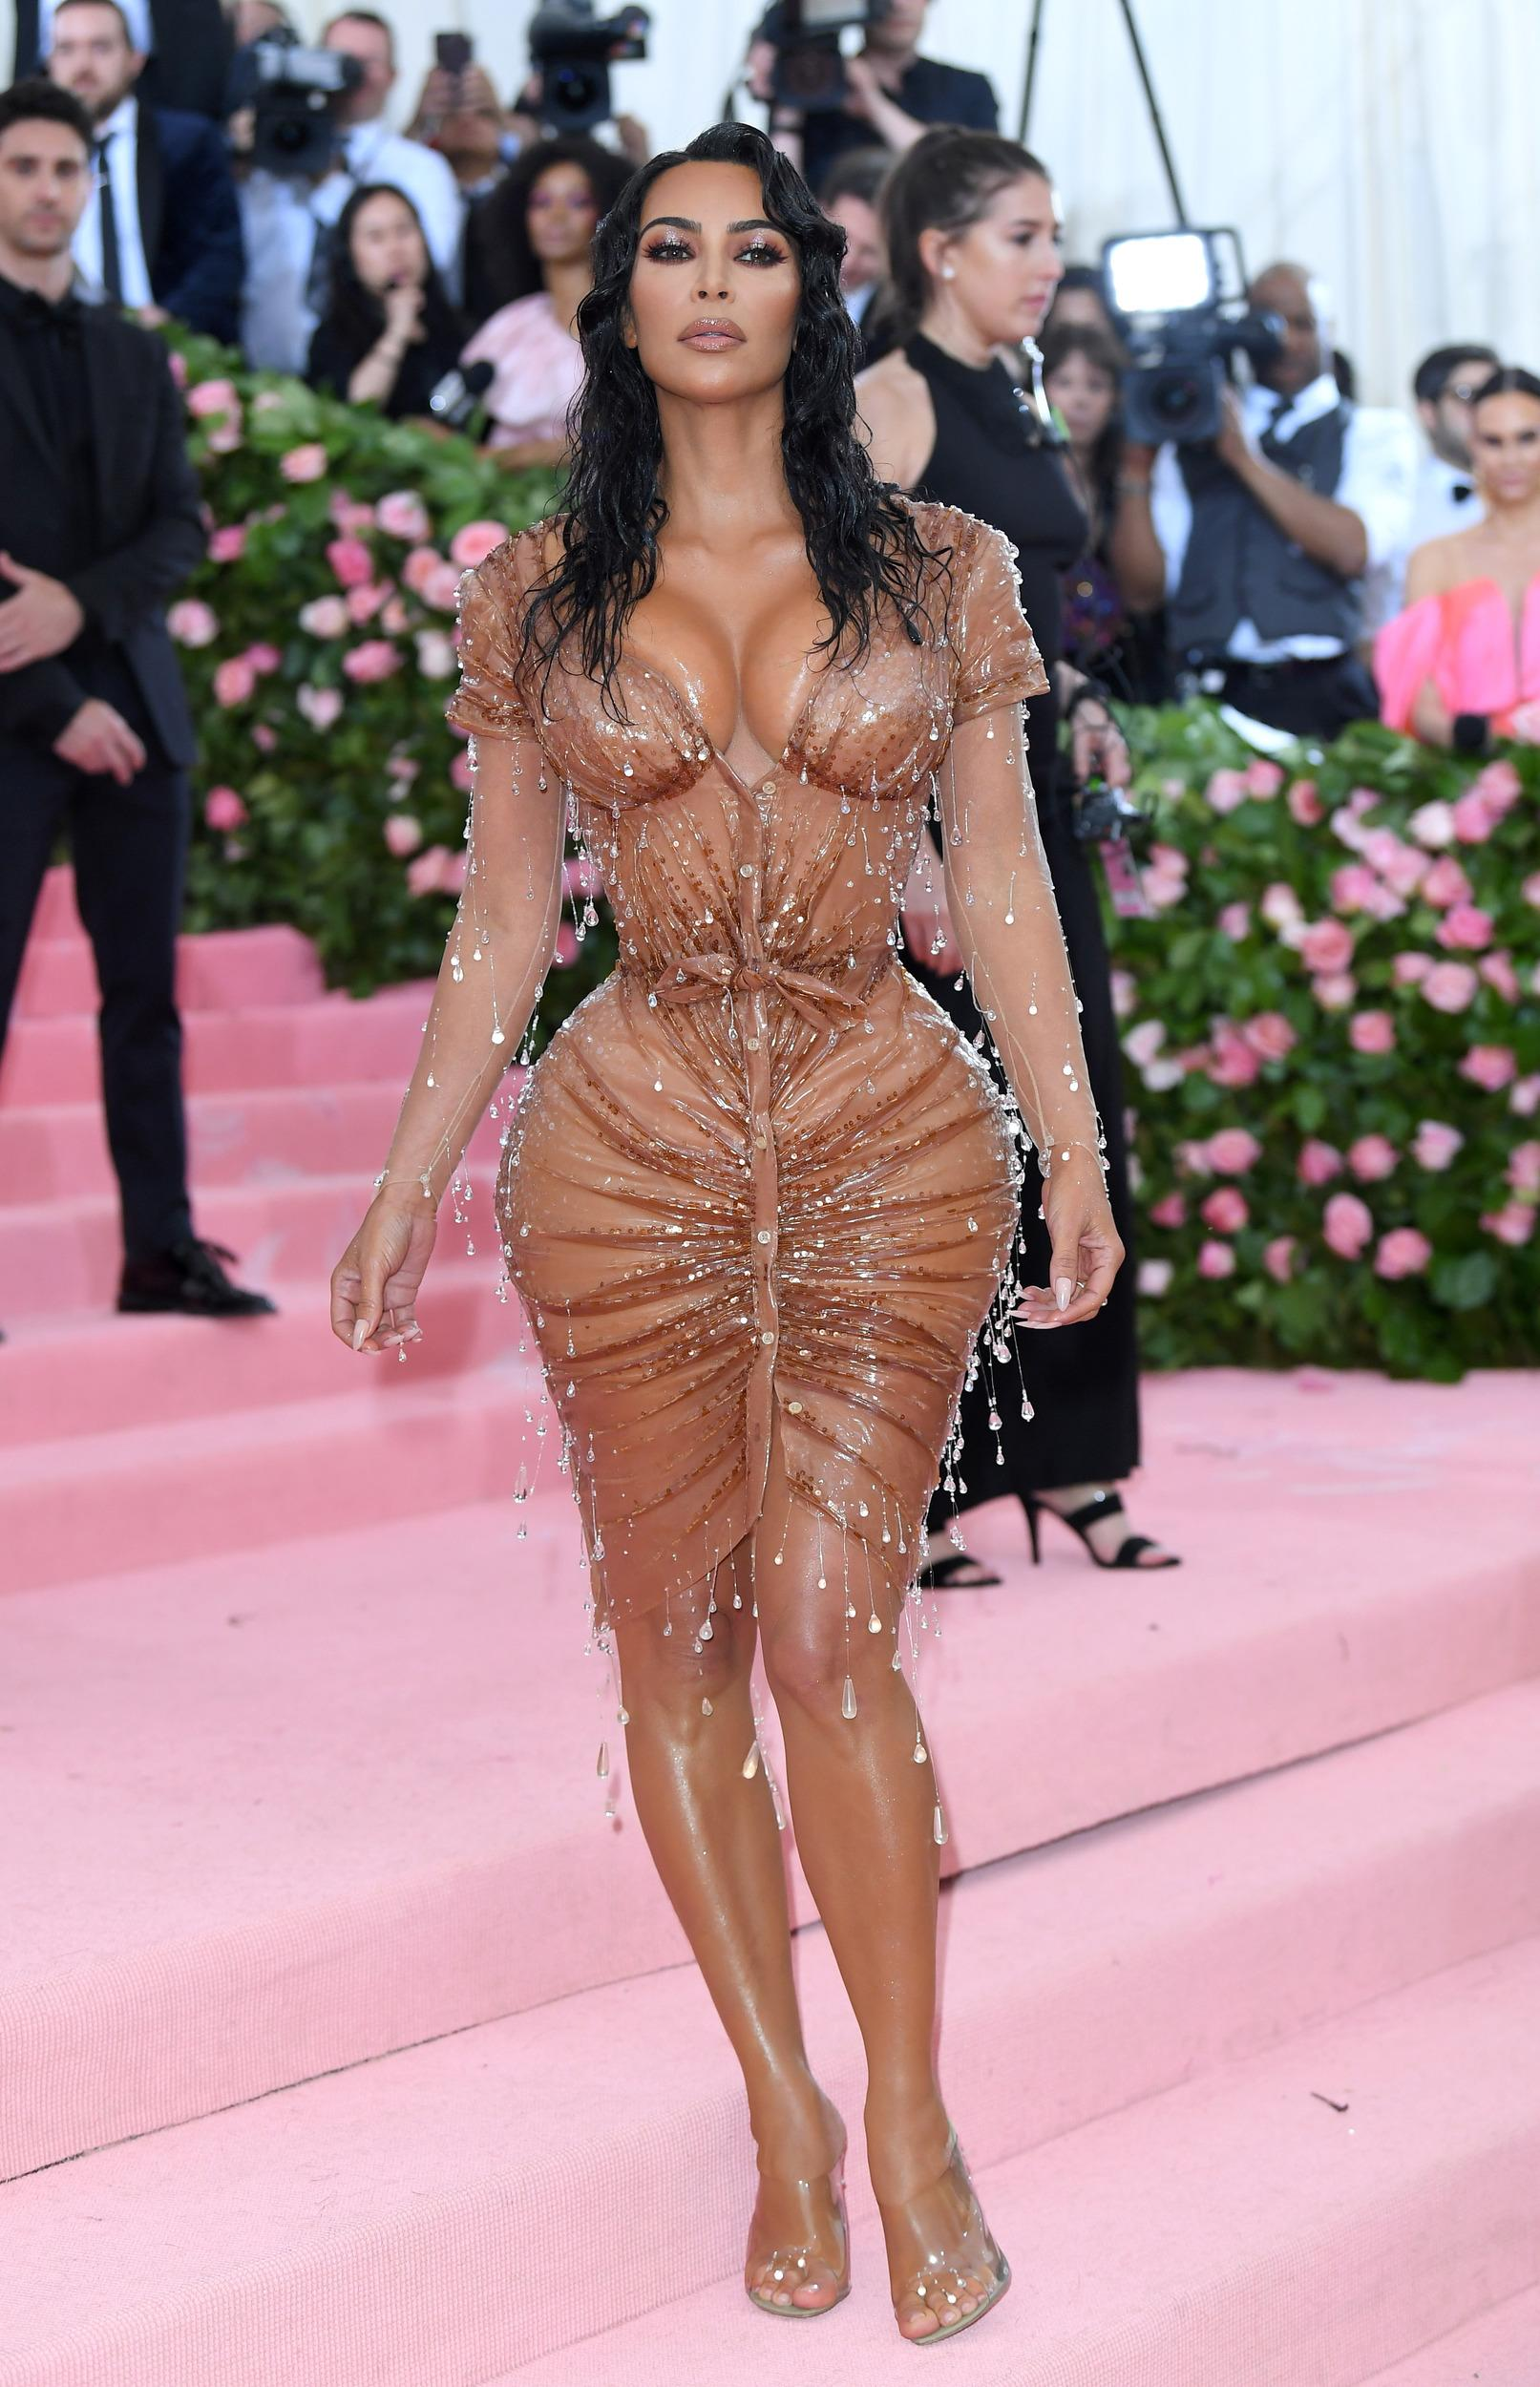 NEW YORK, NEW YORK - MAY 06: Kim Kardashian West arrives for the 2019 Met Gala celebrating Camp: Notes on Fashion at The Metropolitan Museum of Art on May 06, 2019 in New York City. (Photo by Karwai Tang/Getty Images)